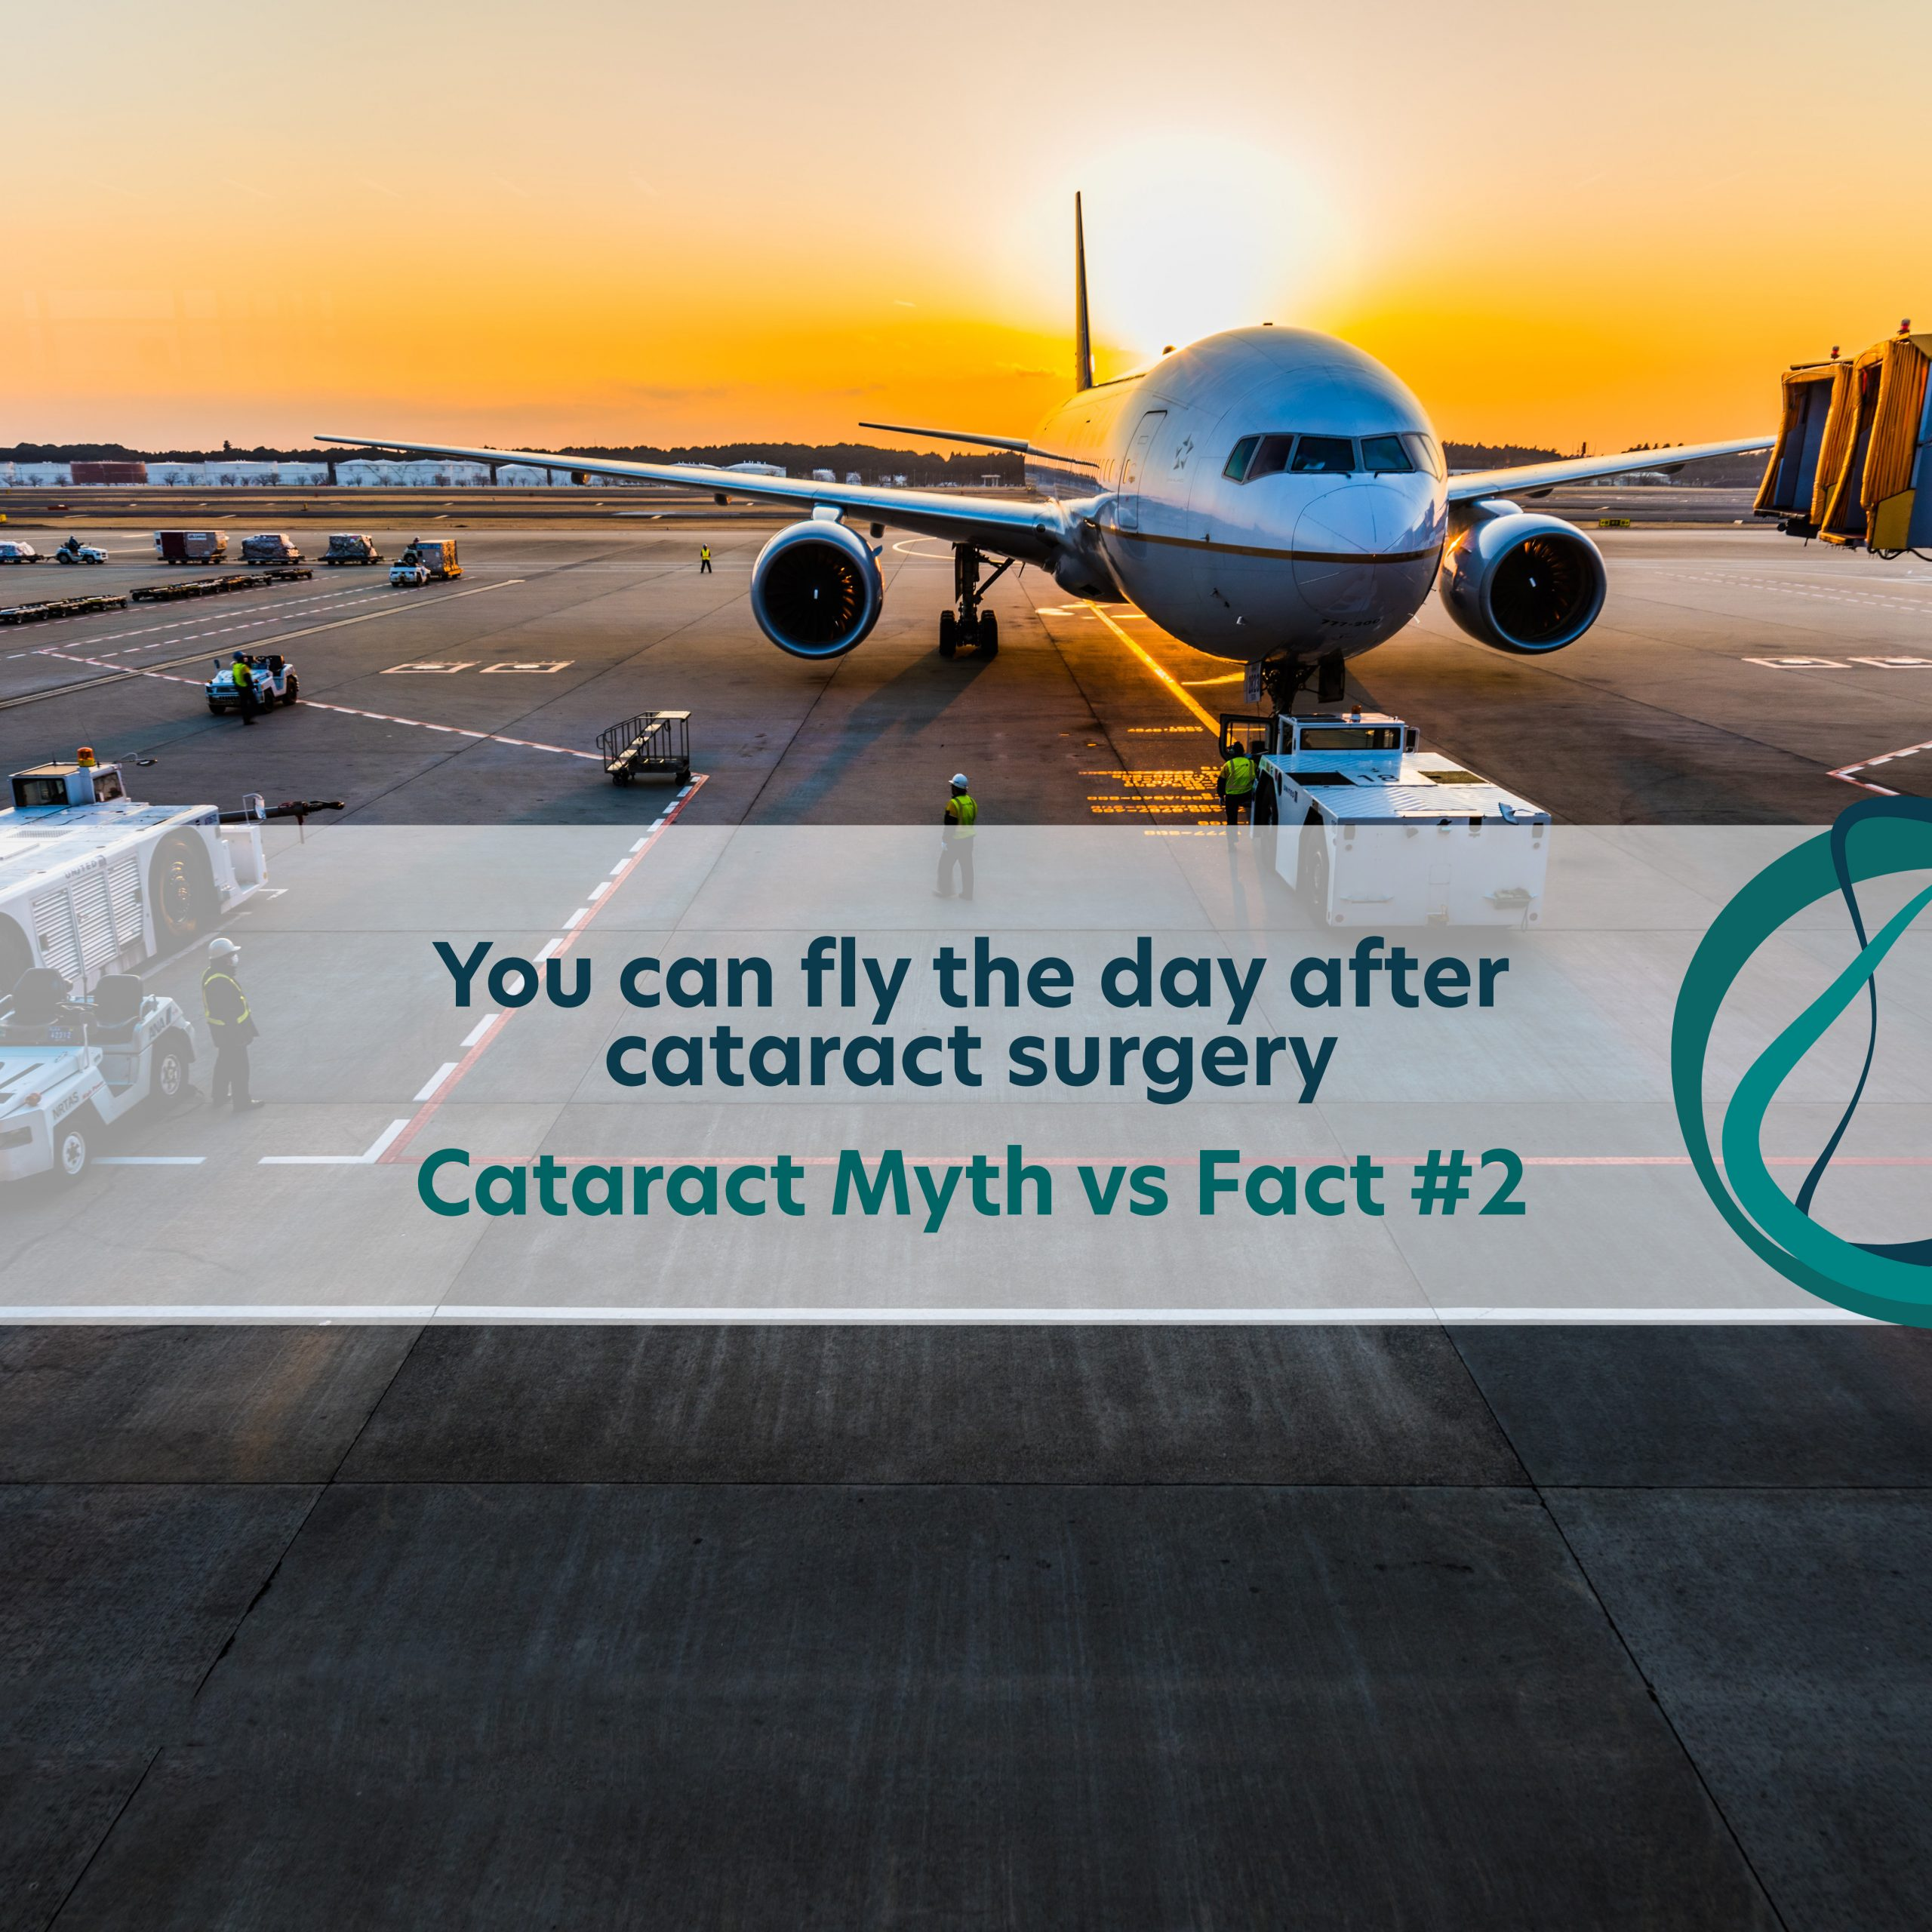 Cataract Myth vs Fact #2